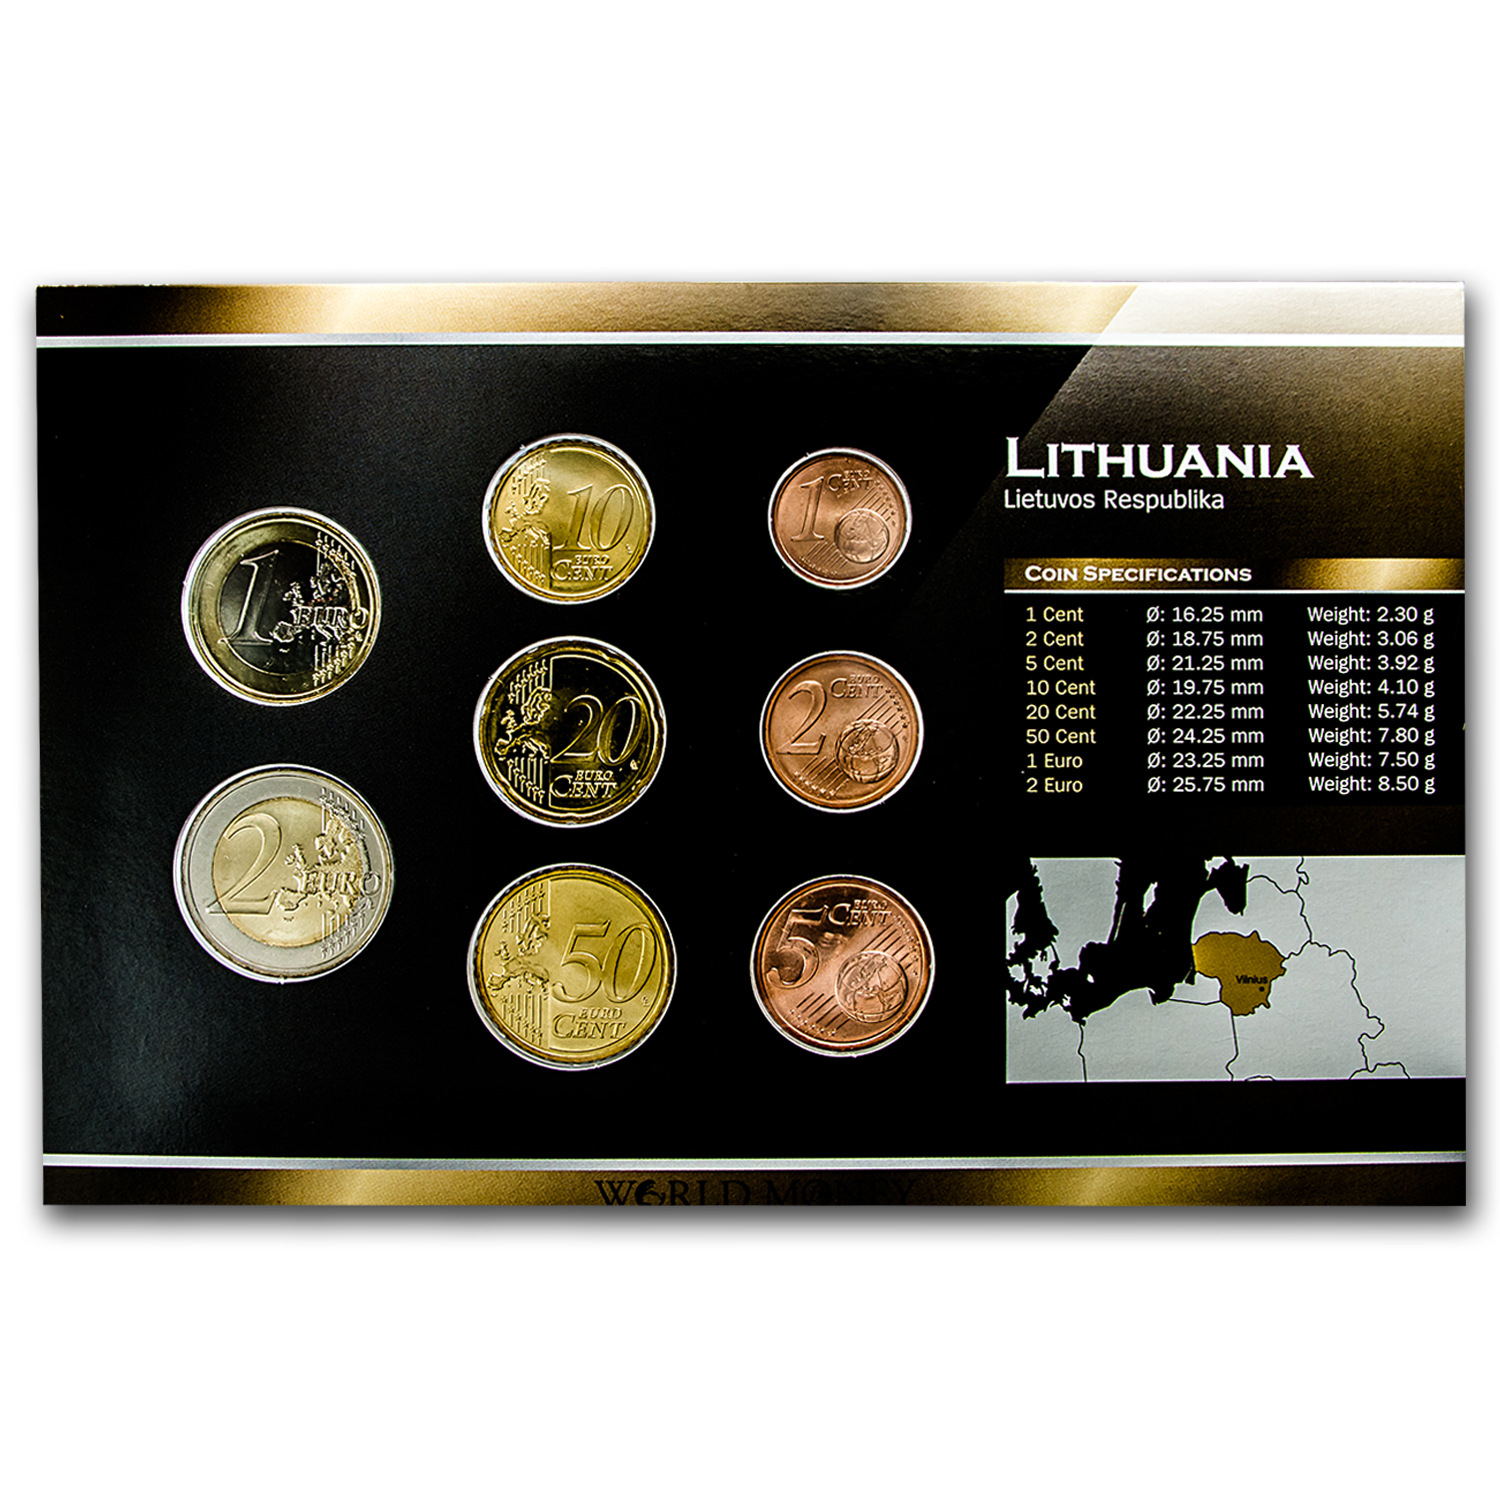 2015 Lithuania 1 Eurocent-2 Euros 8-Coin Set BU